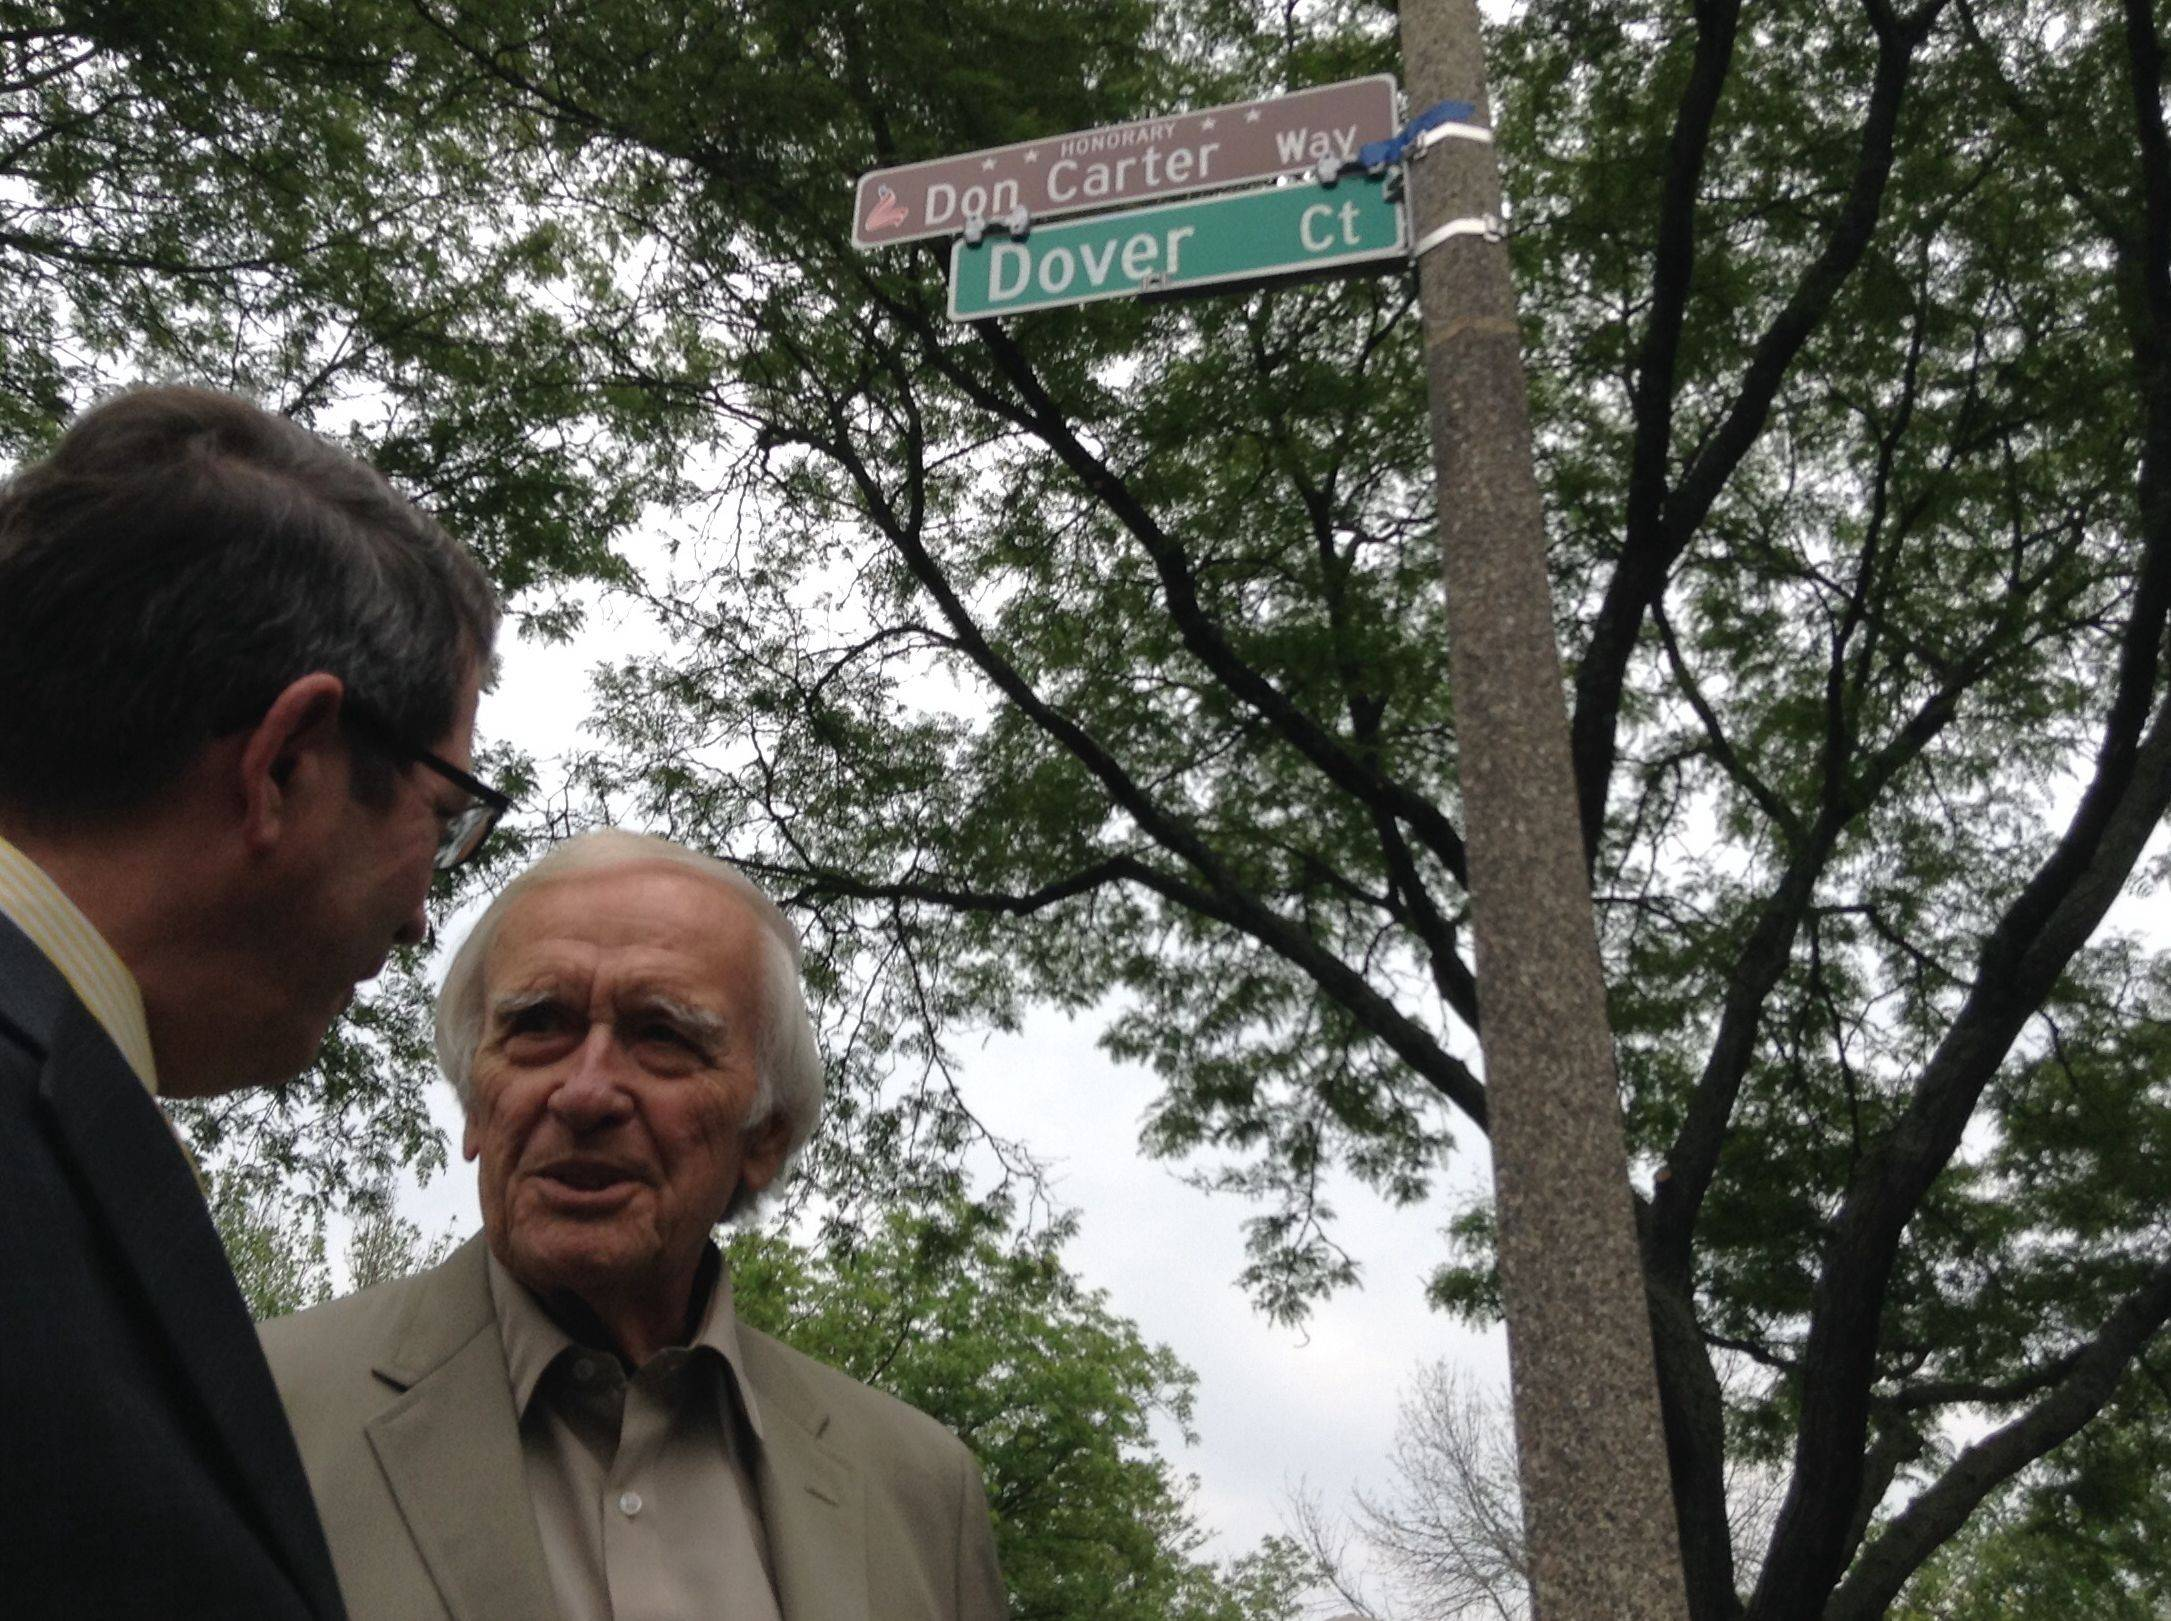 Libertyville Mayor Terry Weppler, left, unveiled the village's first honorary street sign for World War II veteran and longtime resident Don Carter, right.